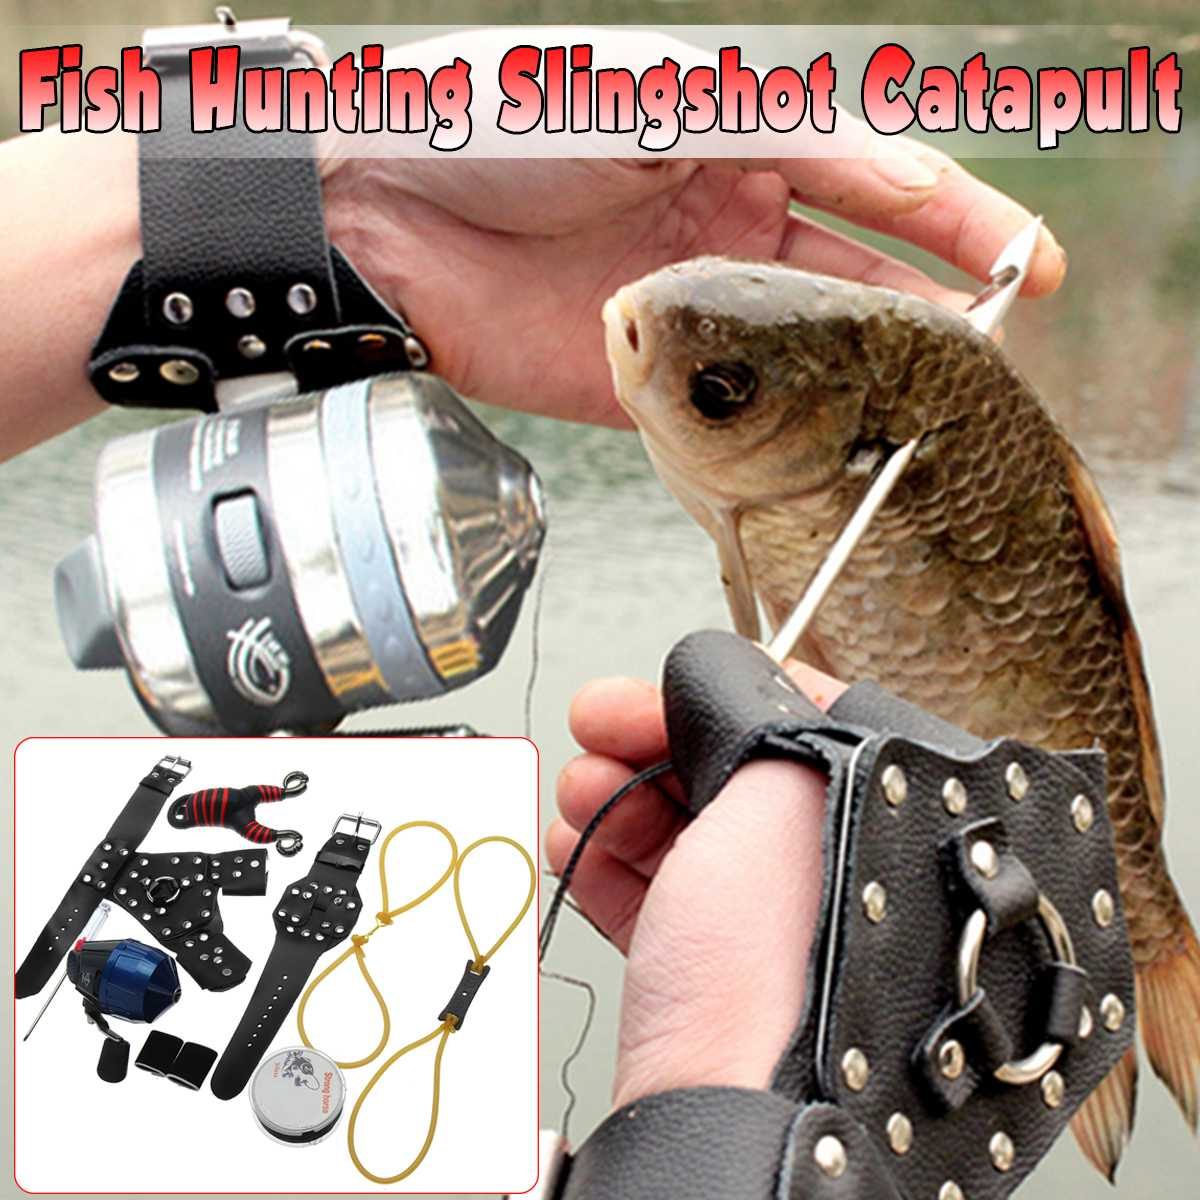 Bow & Arrow Orderly Diy Fishing Slingshot Catapult Fish Hunting Kit Wristband Guard For Right/left Hand Rubber Outdoor Protective Sports Tools Moderate Cost